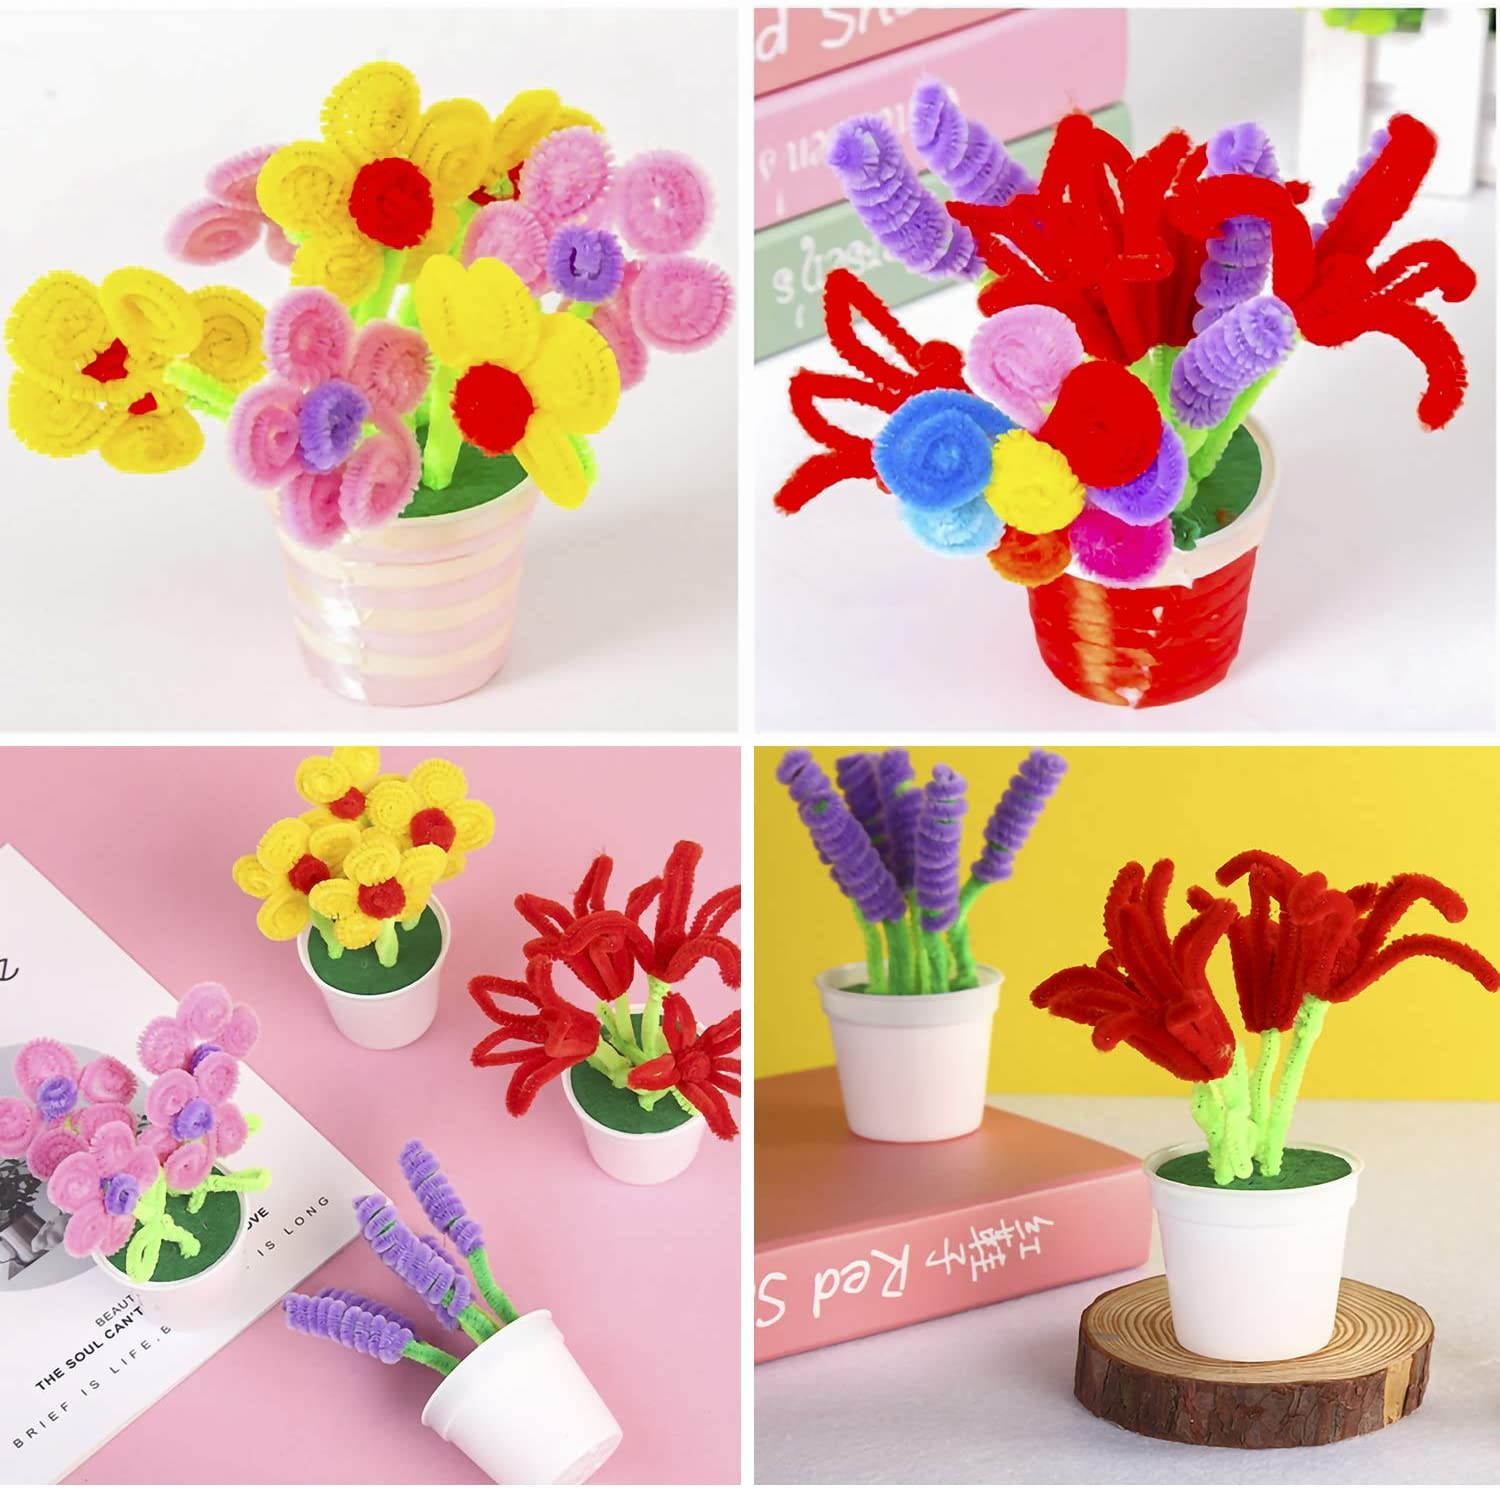 6 mm x 12 inch ONEPENG 300 Pcs Pipe Cleaners Assorted Colors Chenille Stems for Valentine Day DIY Art Craft Decorations Color A